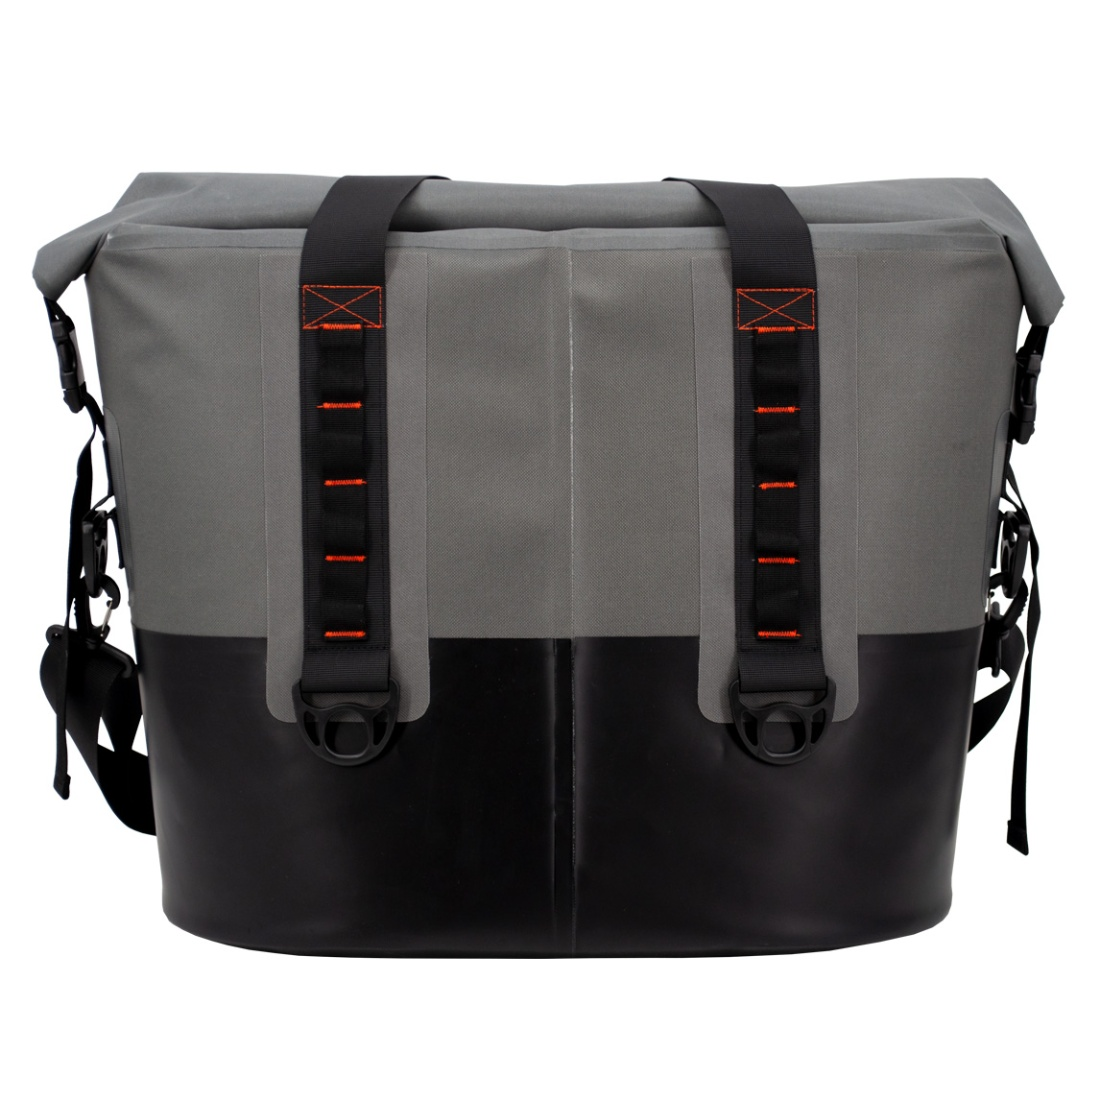 BAFFIN TOTE SOFT COOLER - AKB930 Back Closed